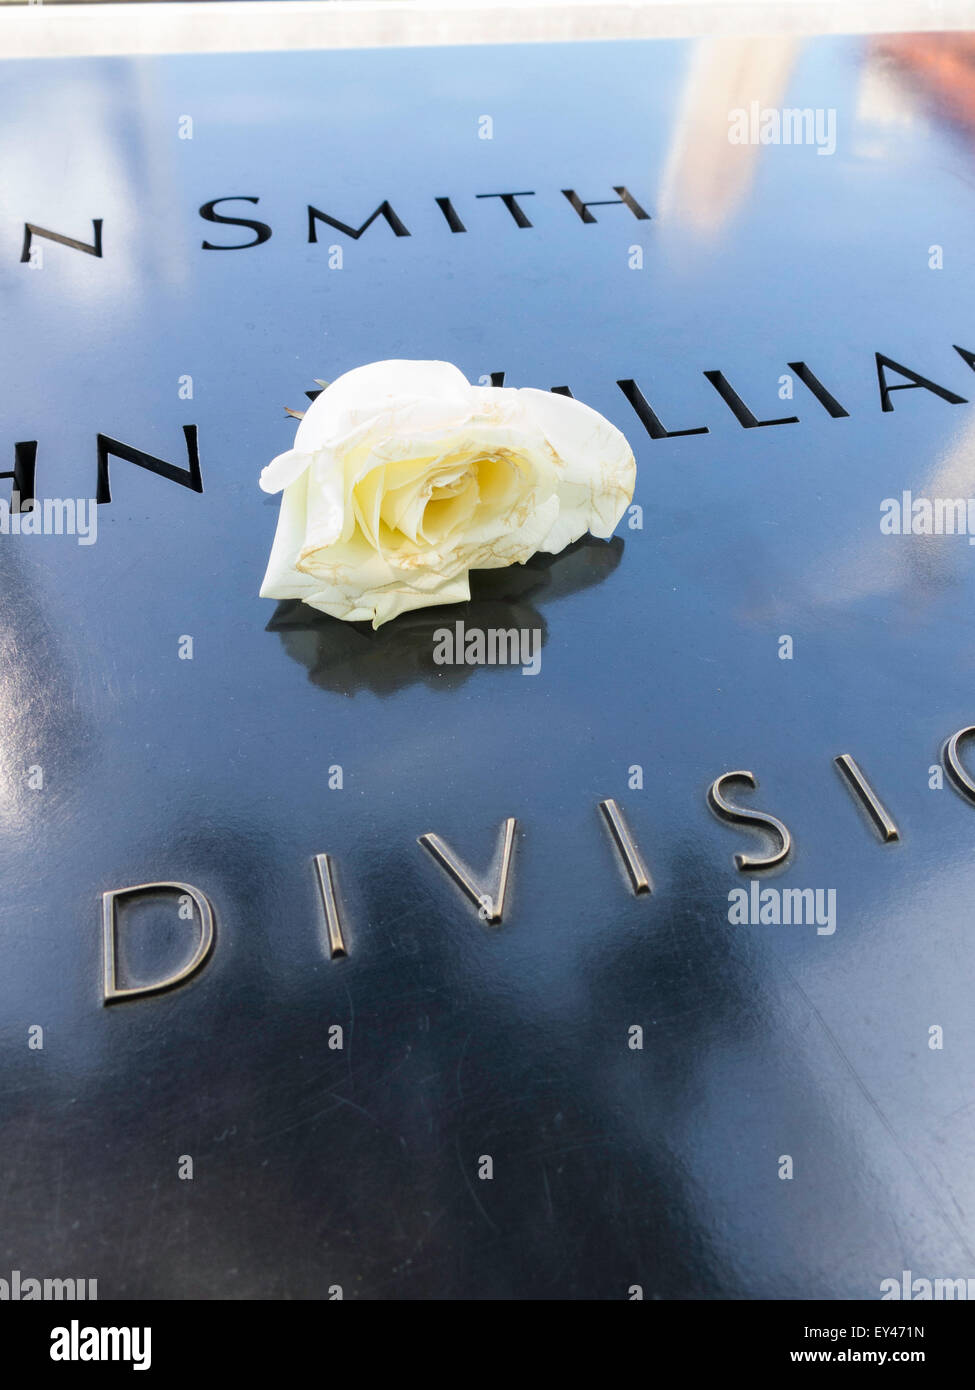 The National September 11 Memorial Site, Lower Manhattan, NYC - Stock Image